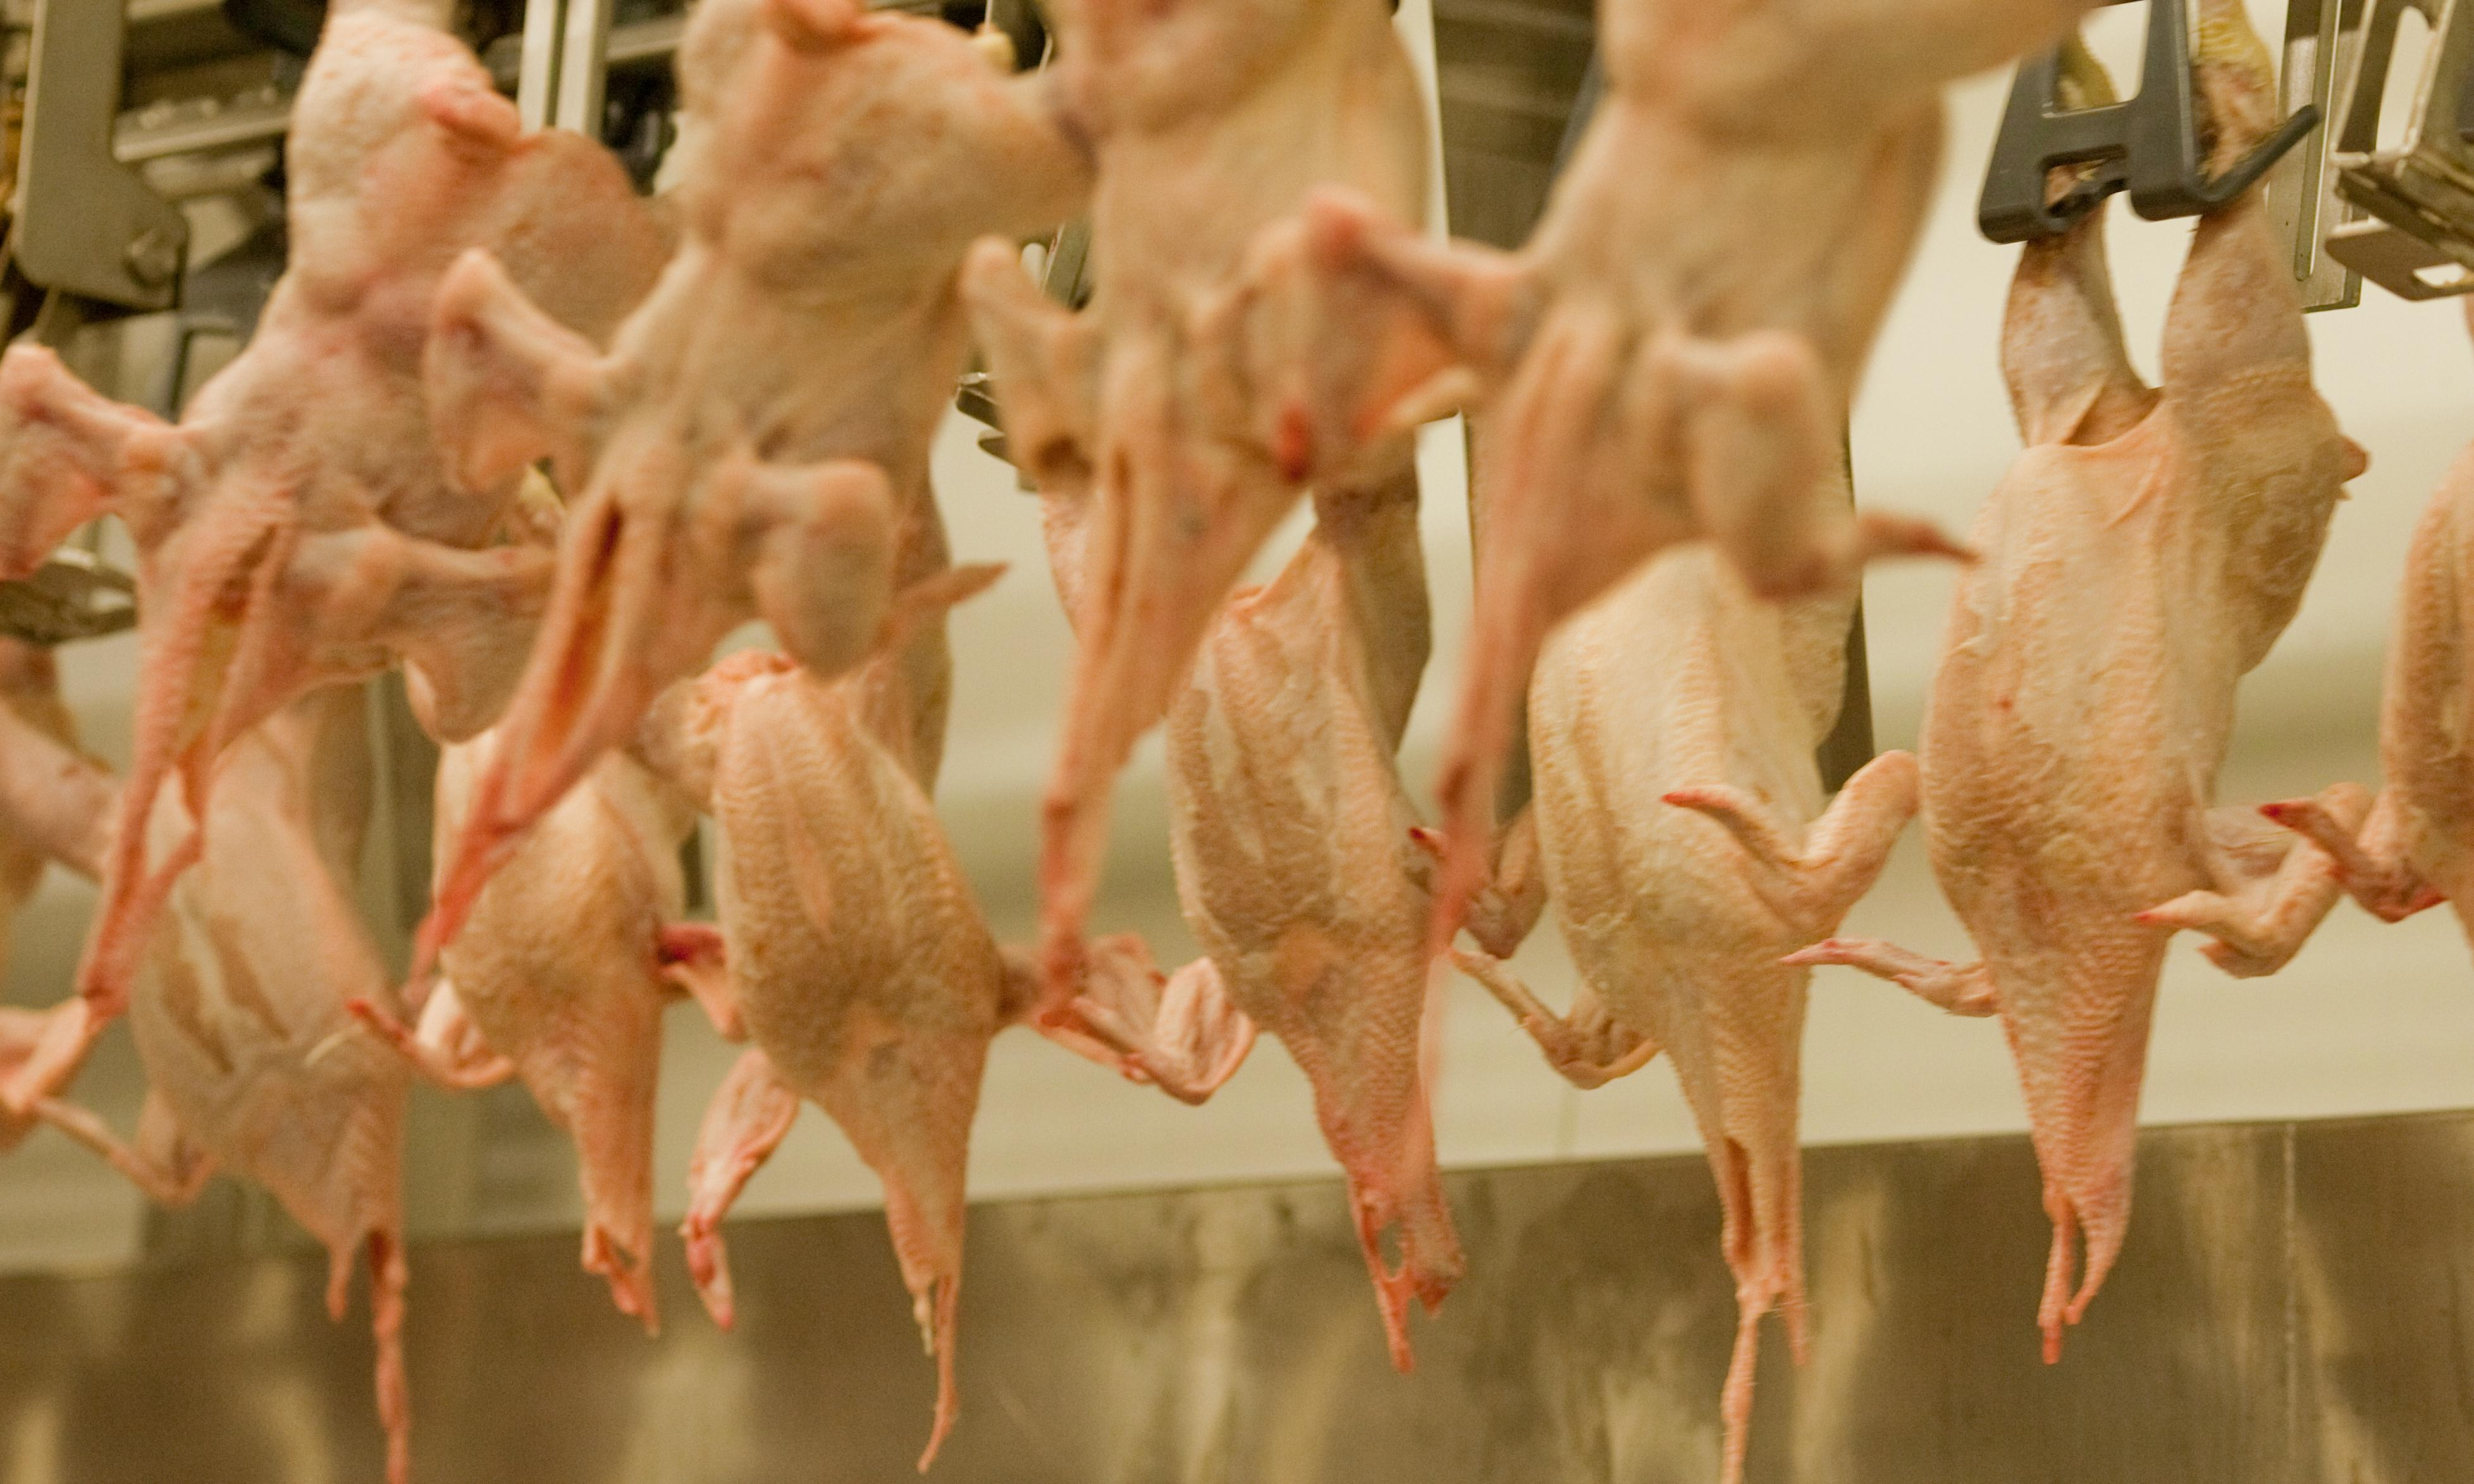 EU plan to reduce checks on chickens 'will increase food poisoning risk'